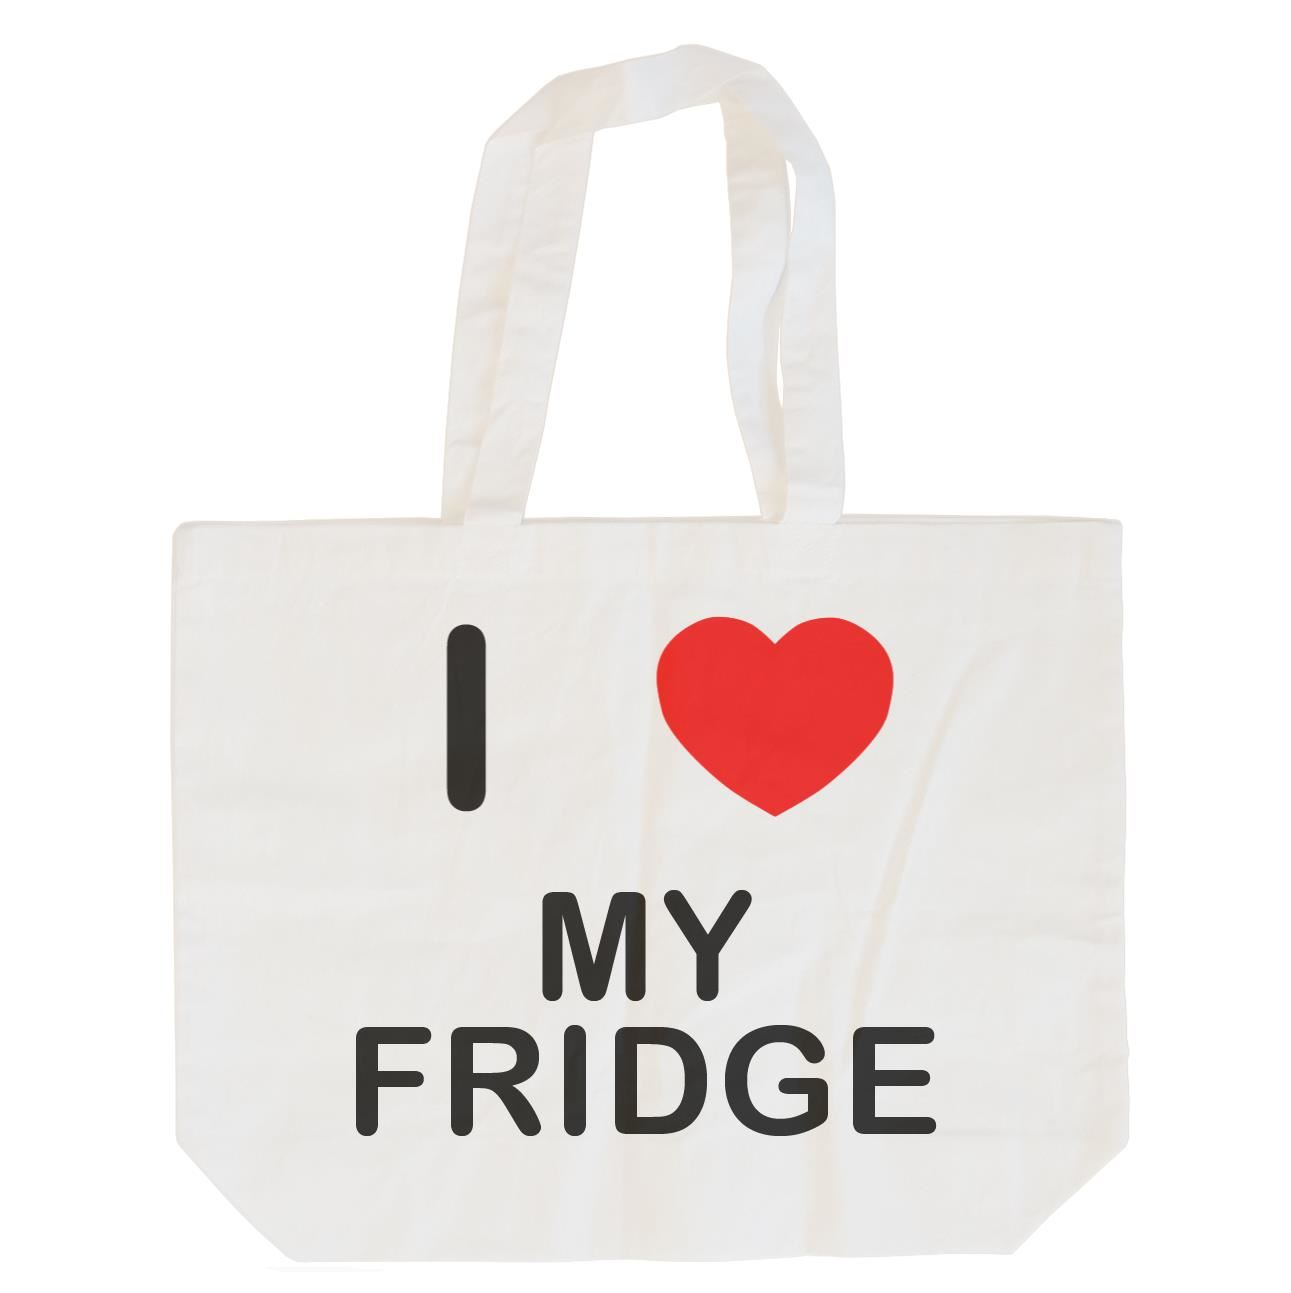 I Love My Fridge - Cotton Bag | Size choice Tote, Shopper or Sling